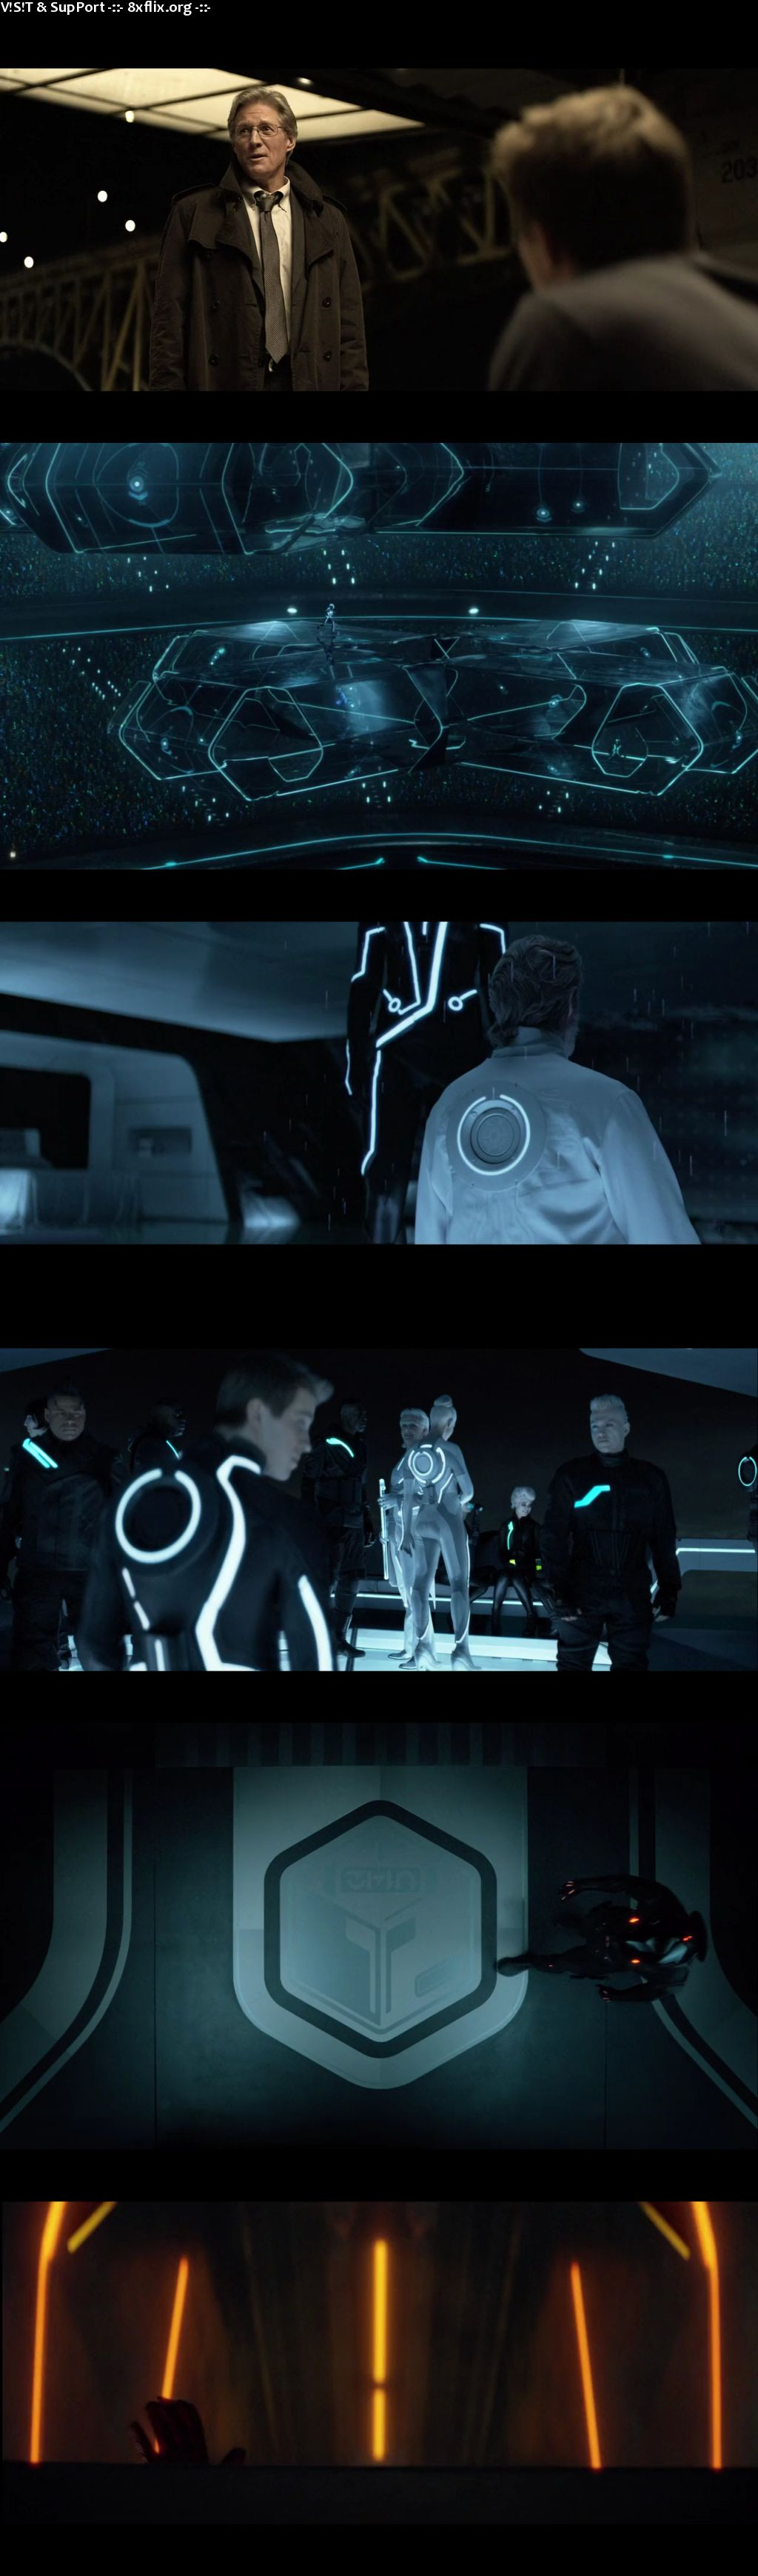 Tron Legacy 2010 Hindi English Dual Audio 720p 480p BluRay